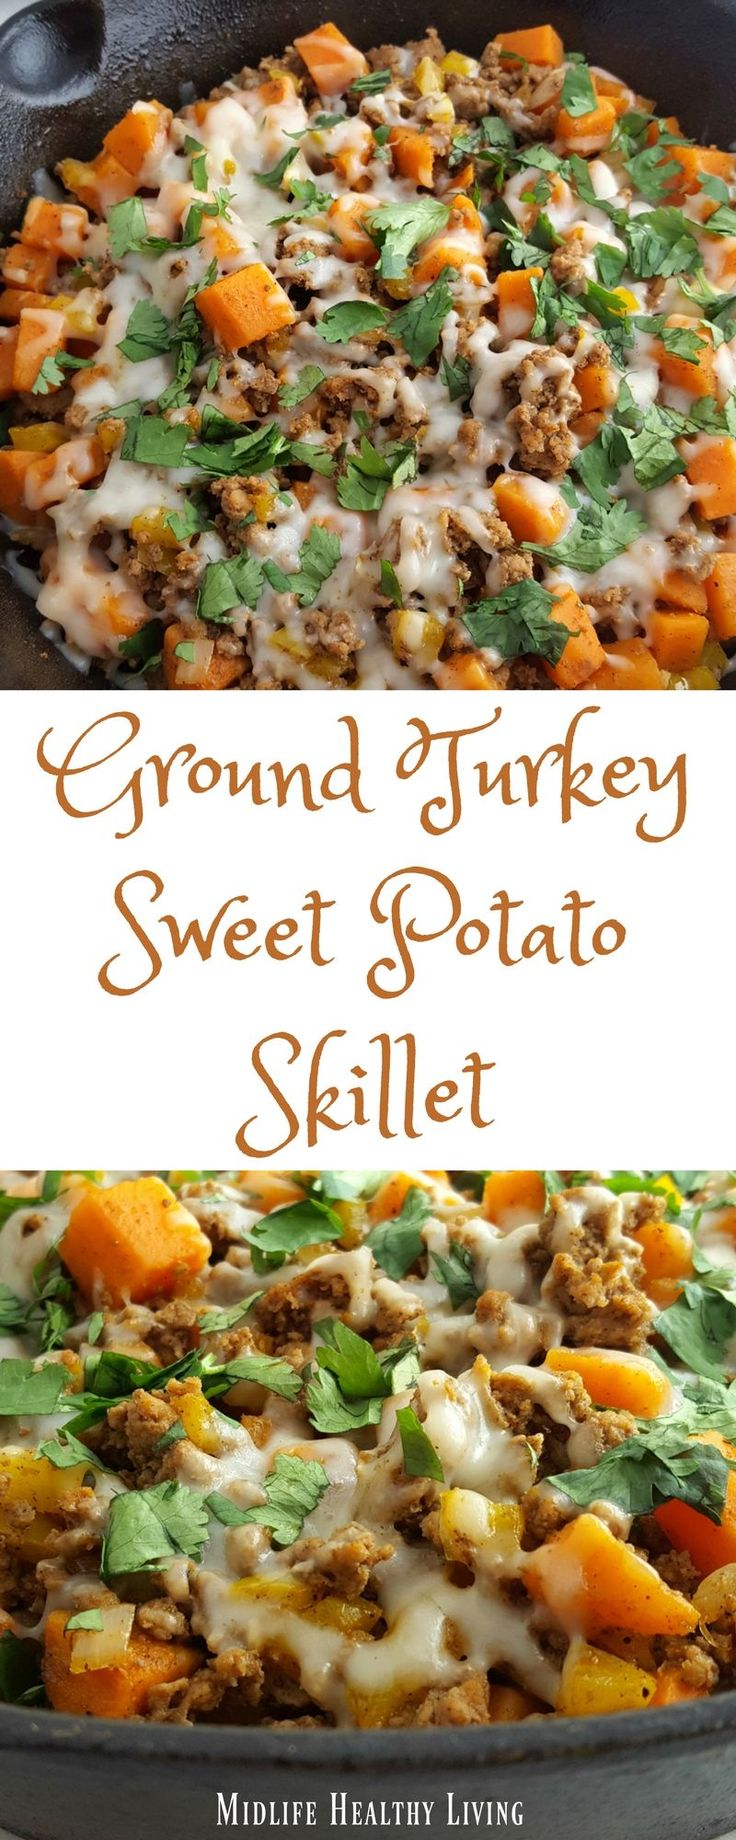 This ground turkey sweet potato skillet recipe is simple, easy, delicious, and Weight Watchers friendly! Each serving is only 10 smart points!